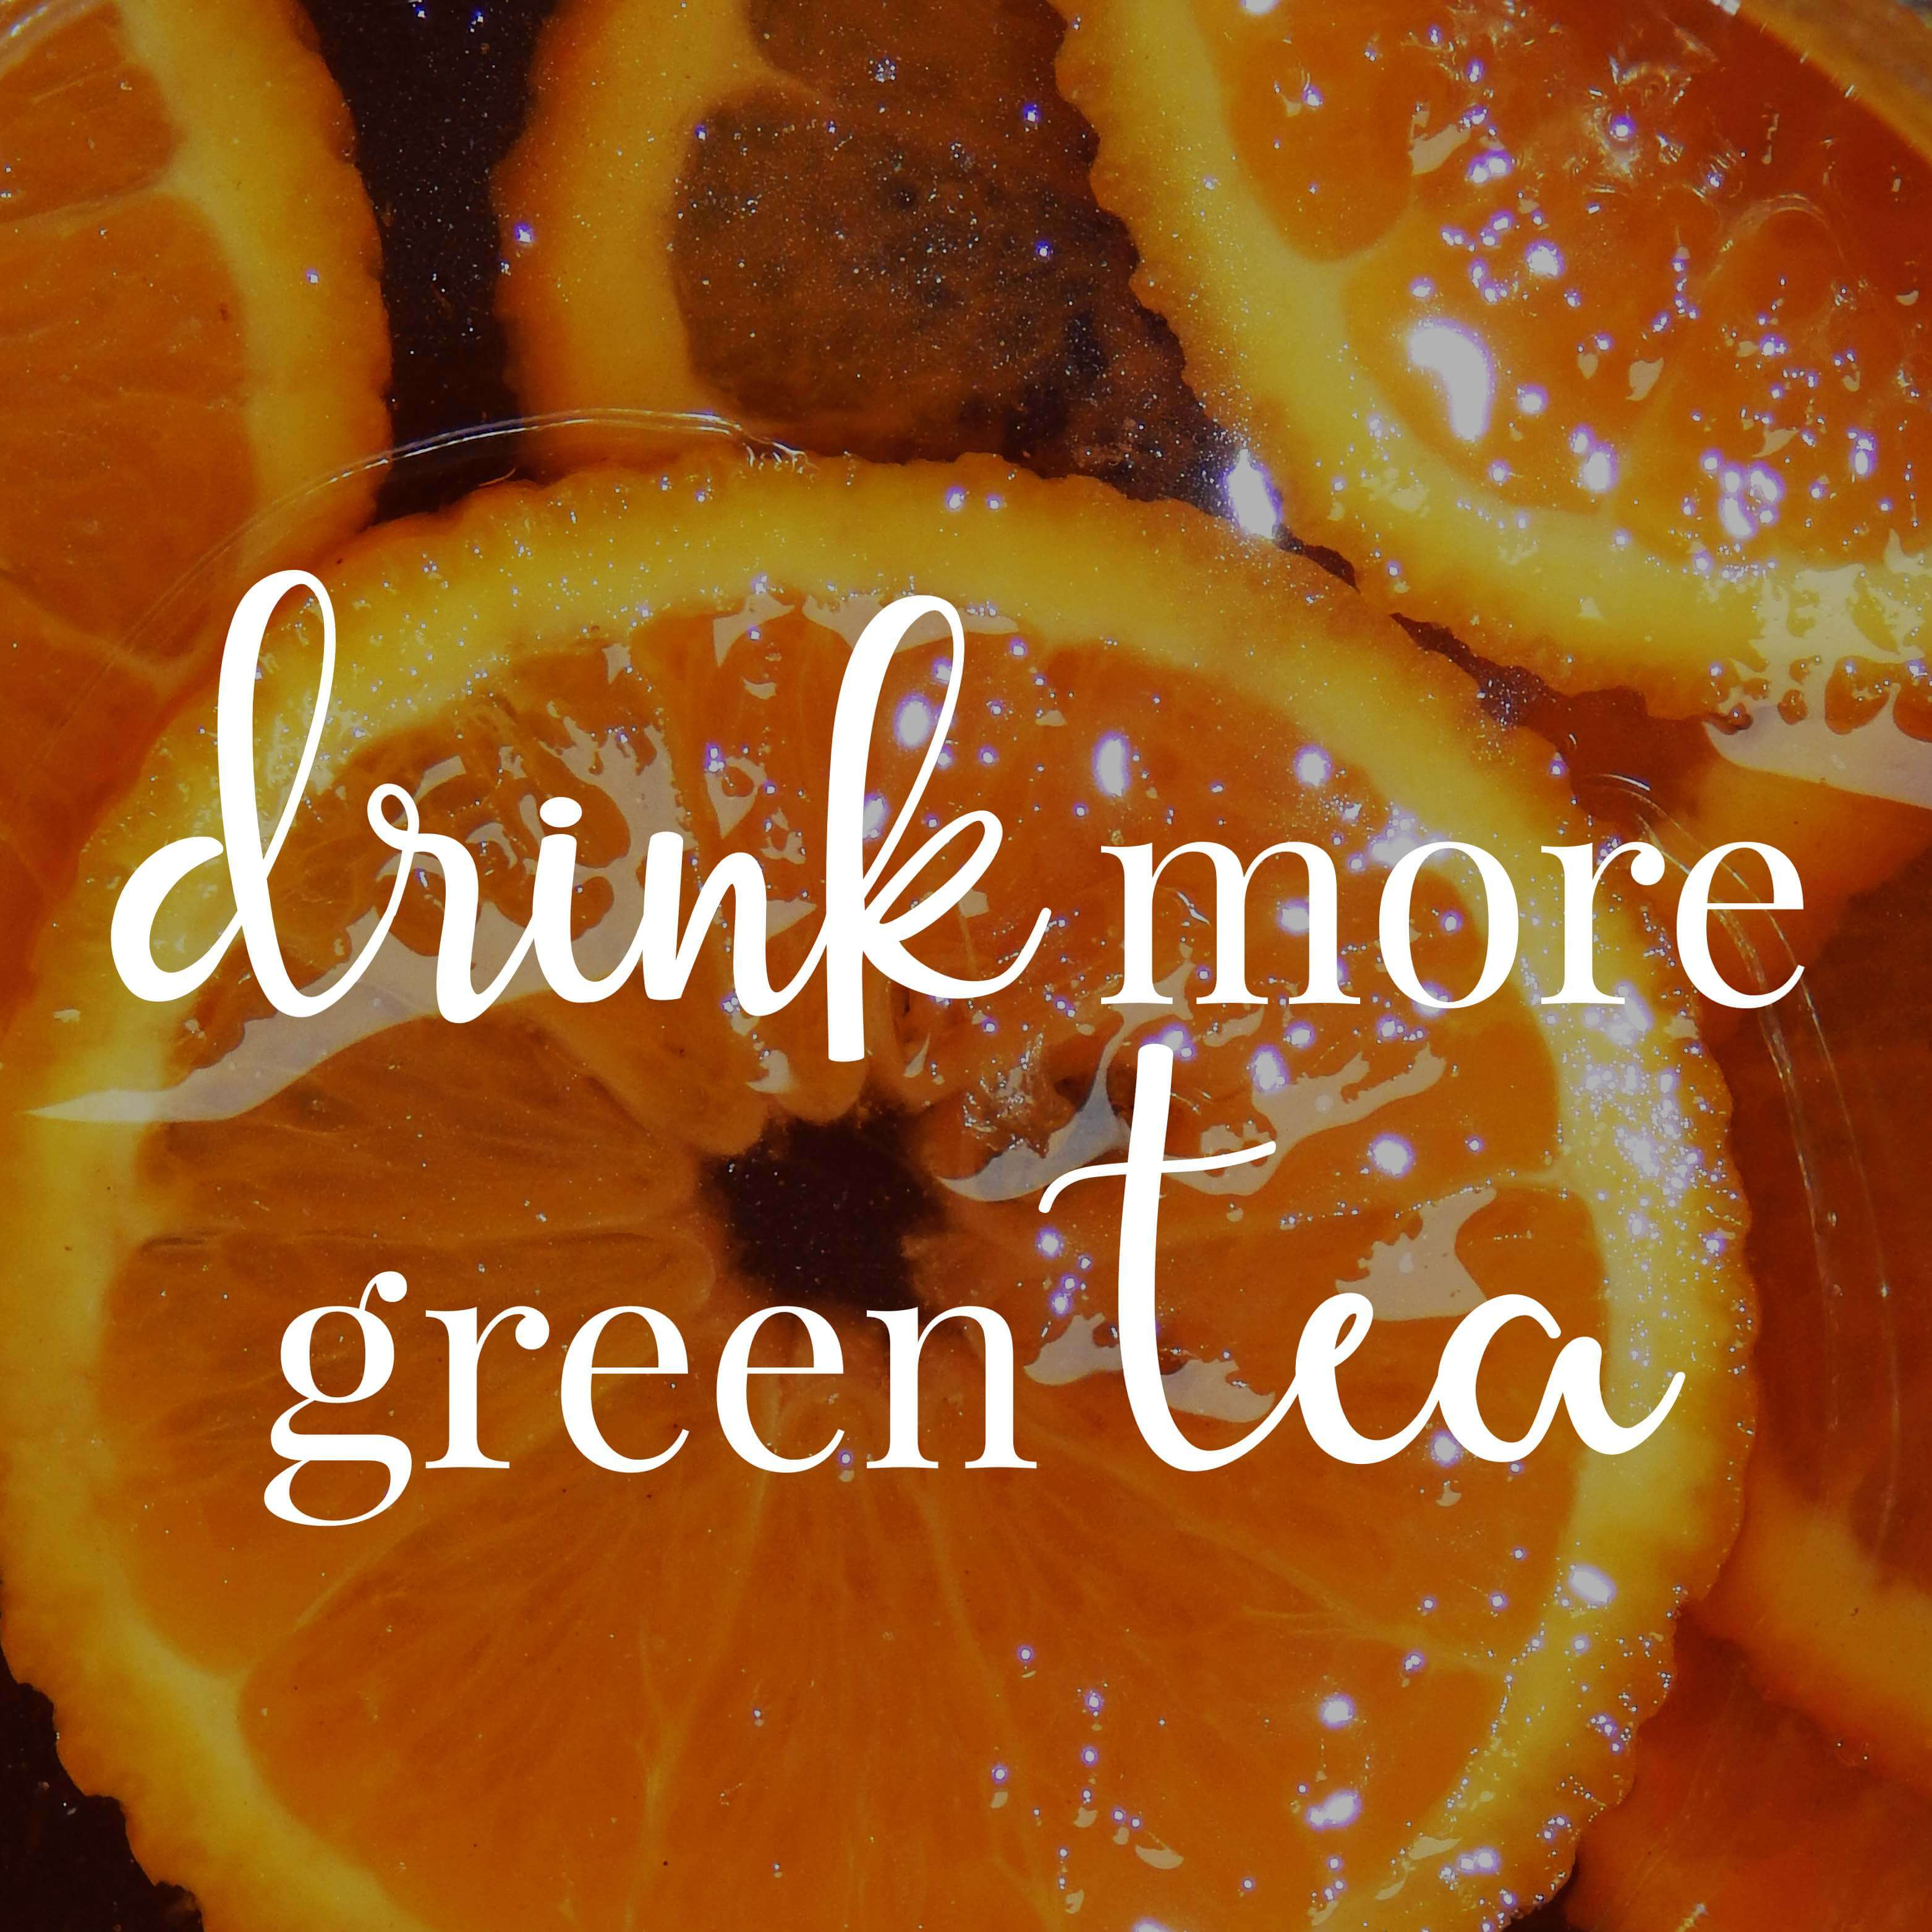 Homemade healthy iced tea with green tea and rooibos